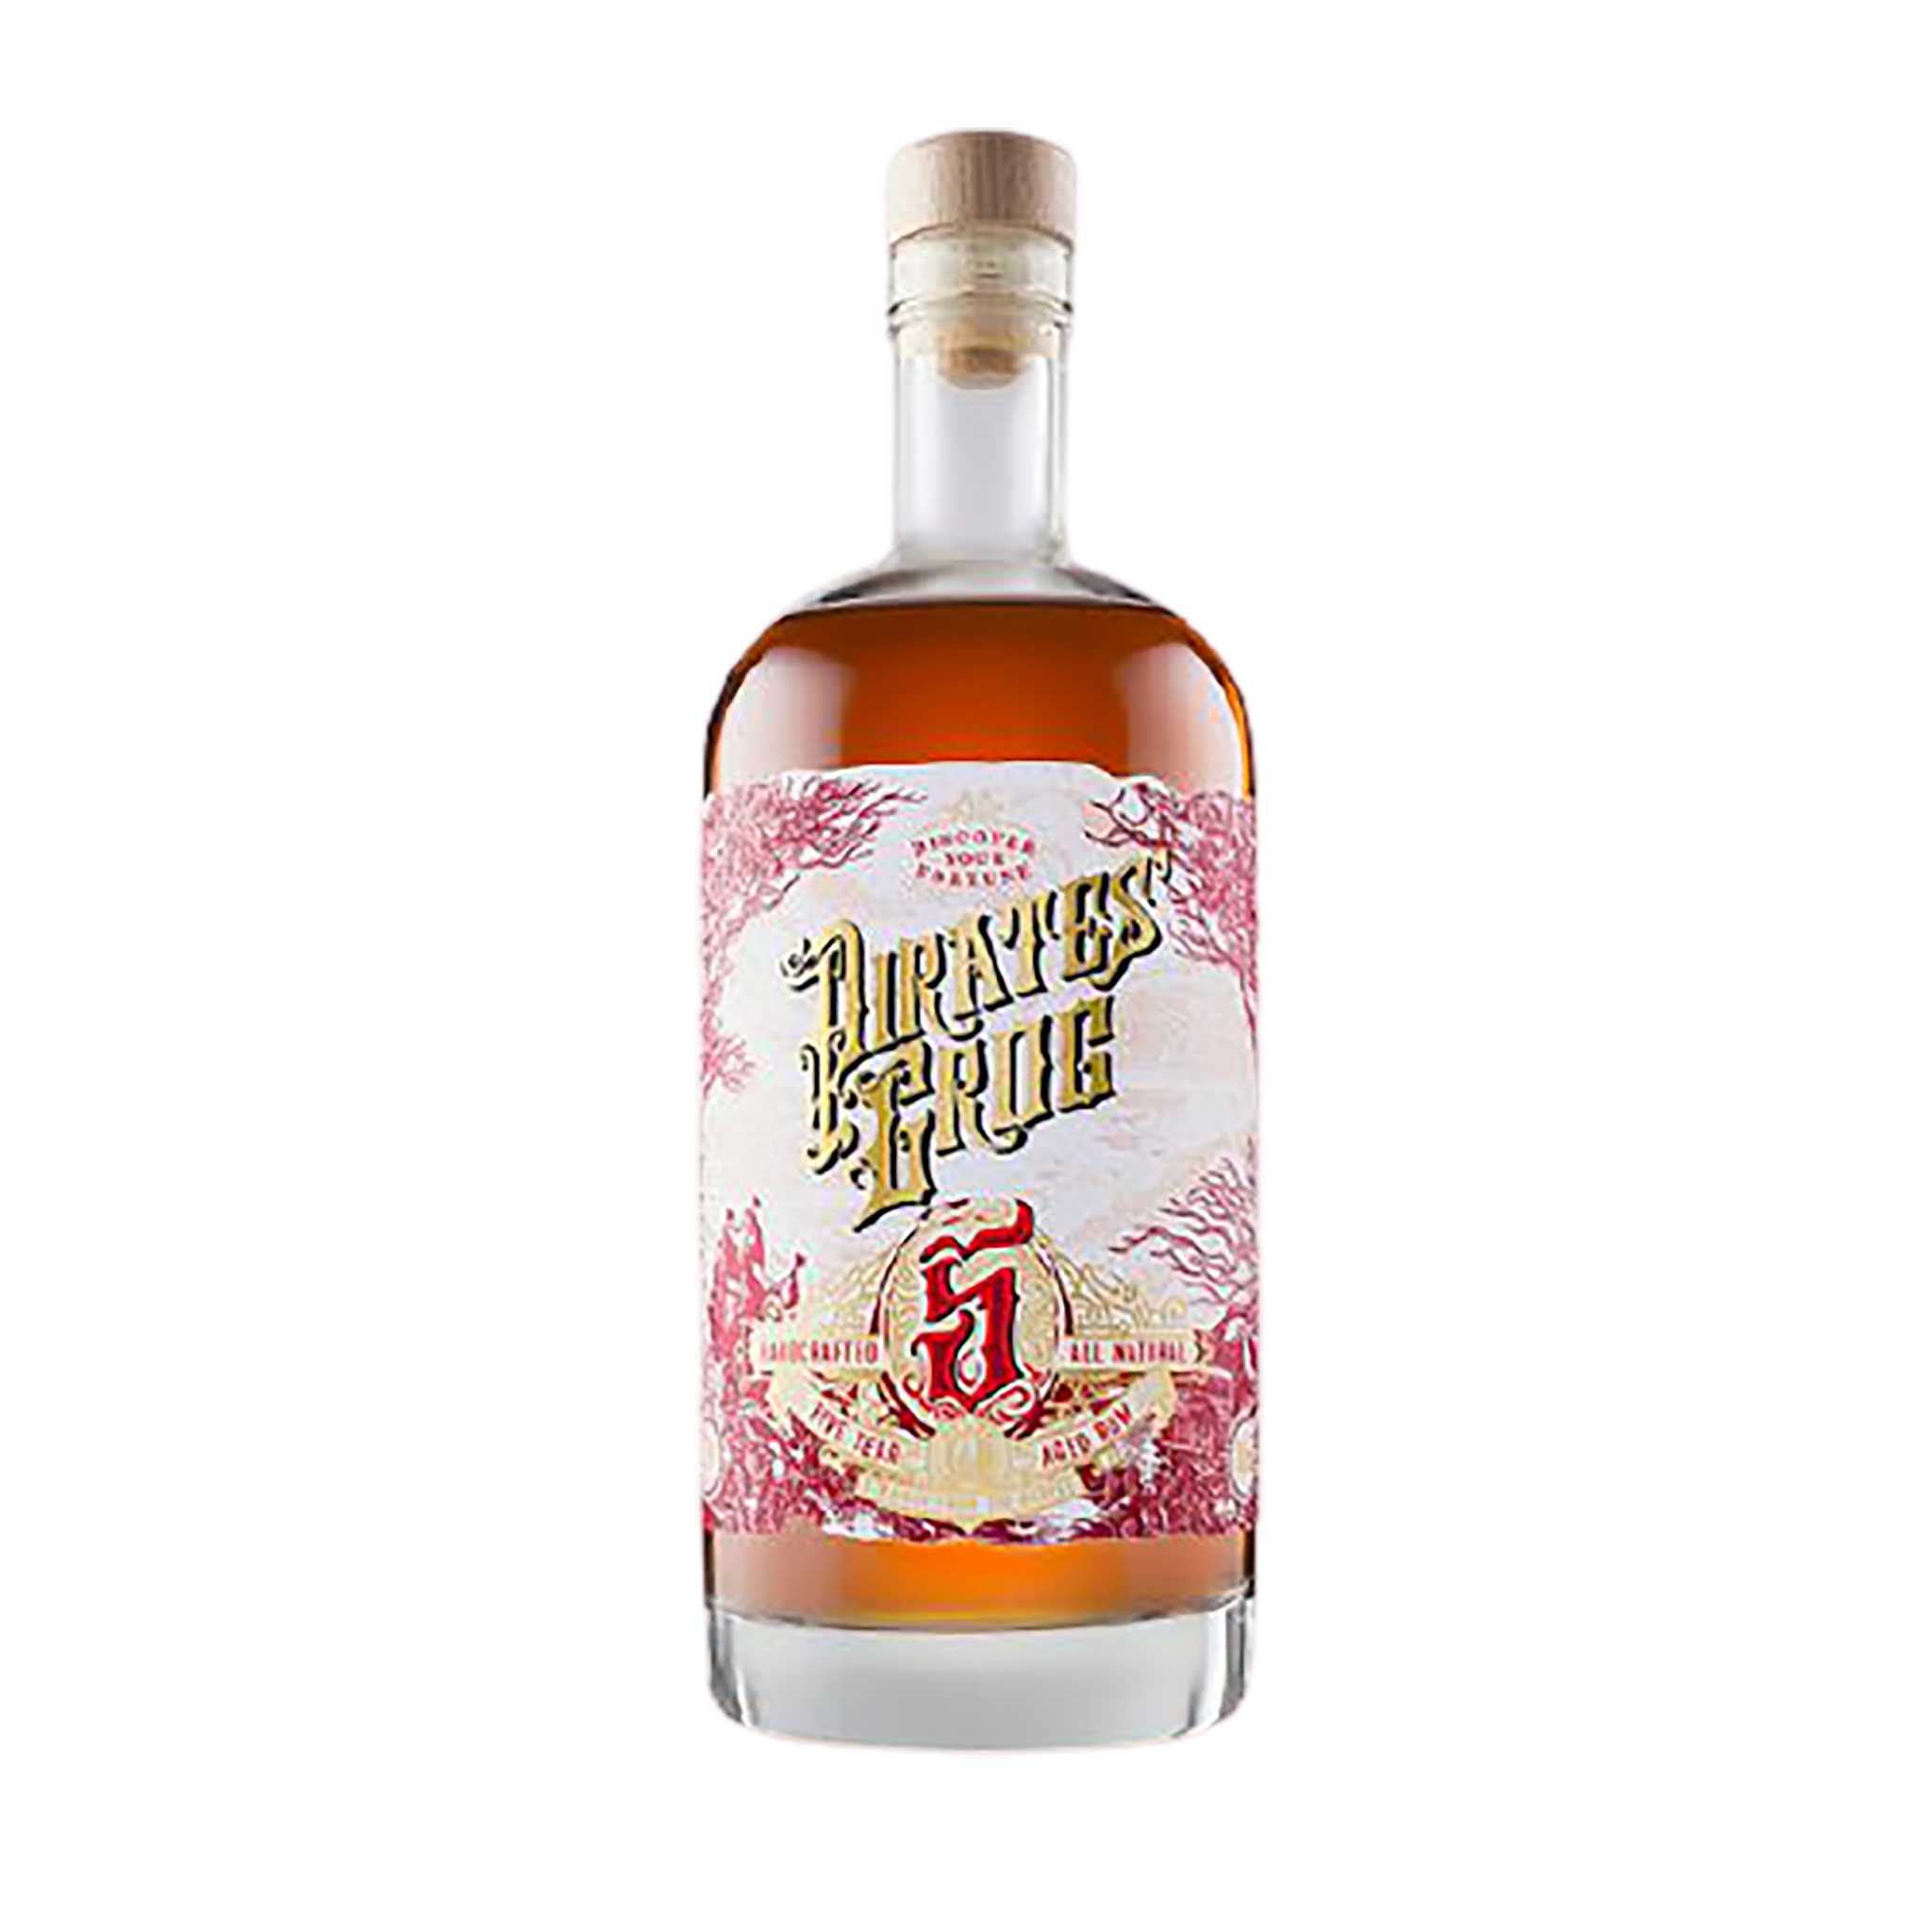 5 Year Aged Rum | The Pirate Range, Liquor & Spirits by Drinks Shop